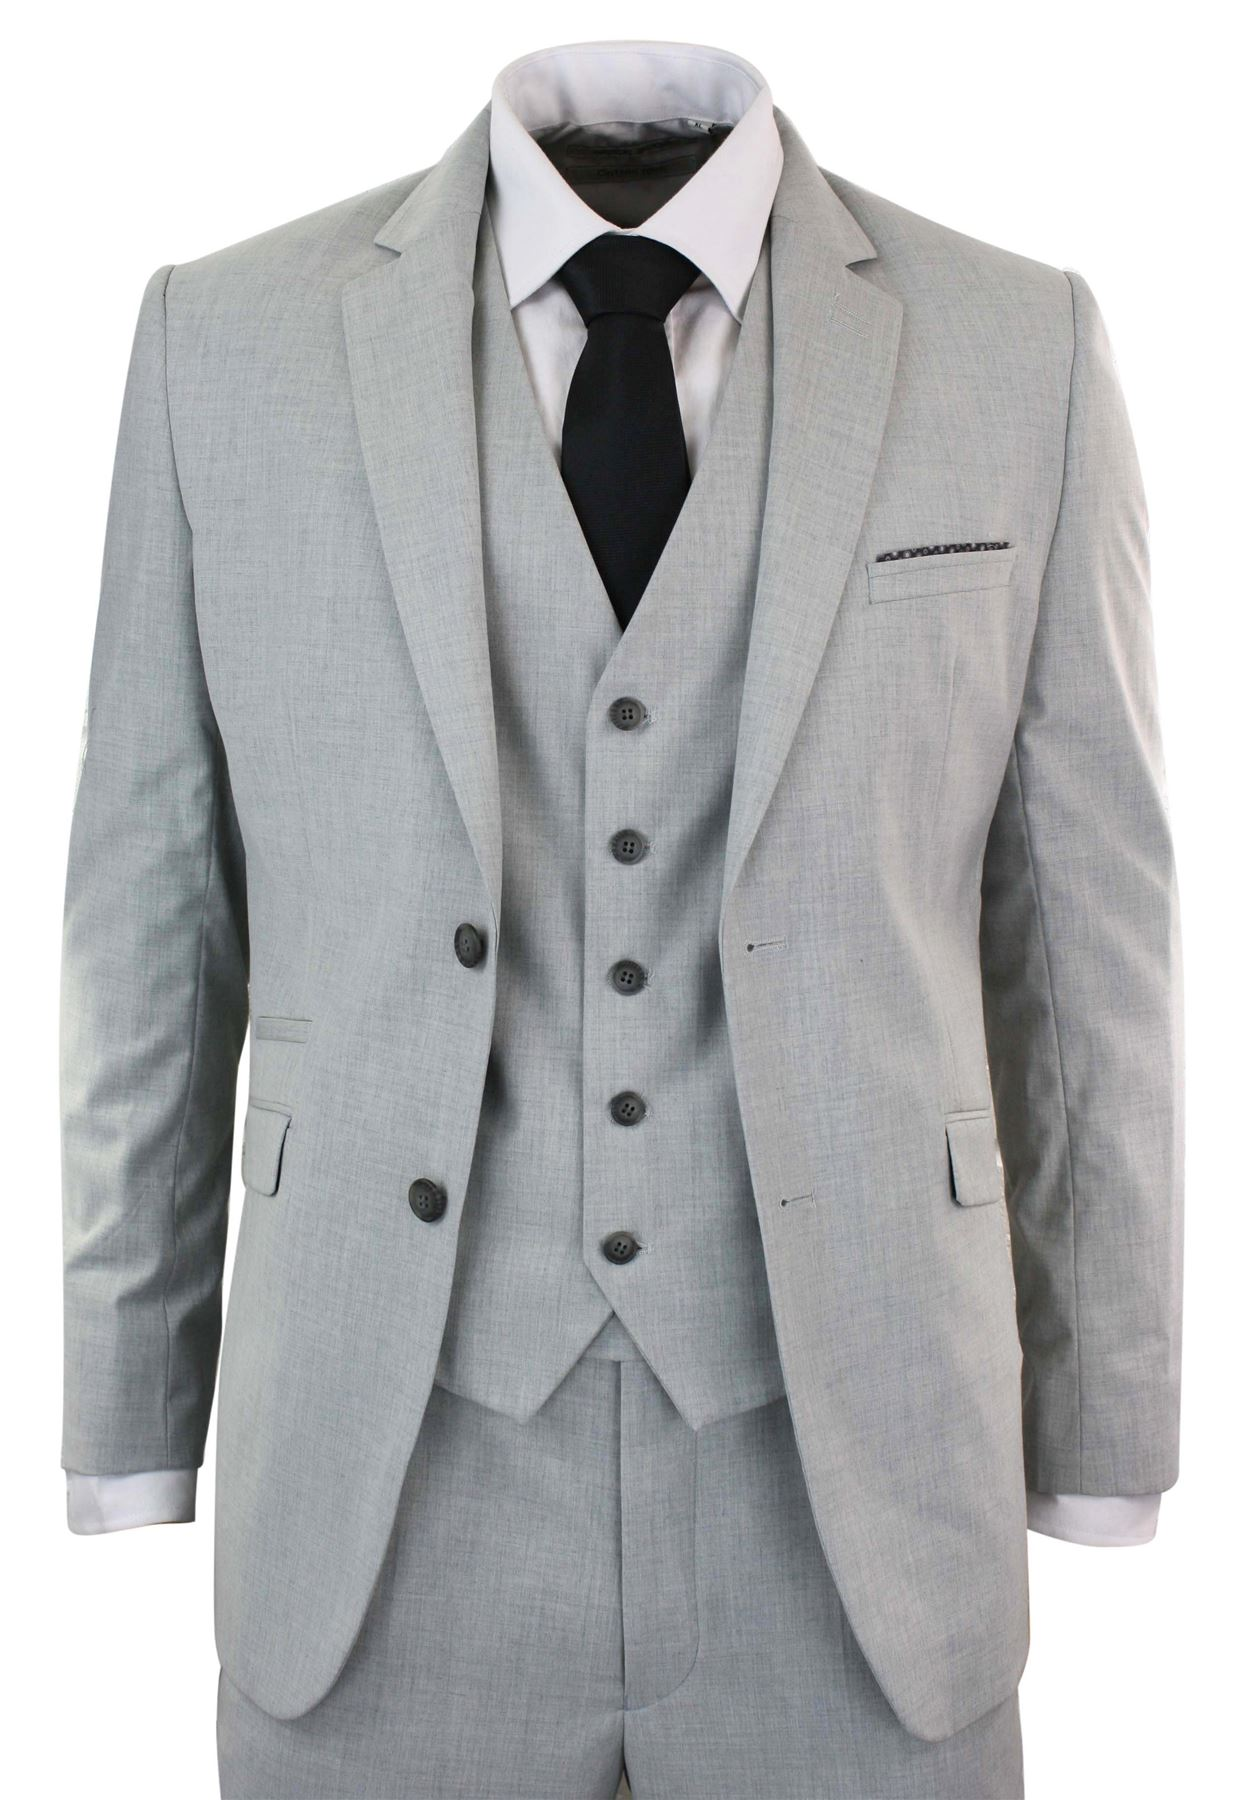 Shop for men's grey waistcoats at archivesnapug.cf Next day delivery and free returns available. s of products online. Buy men's grey waistcoats now! Grey Marl Suit. £ Grey Signature British Wool Suit. £ Charcoal Stretch Twill Suit. £ Light Grey Textured Suit. £ Charcoal Grey Signature Waistcoat.